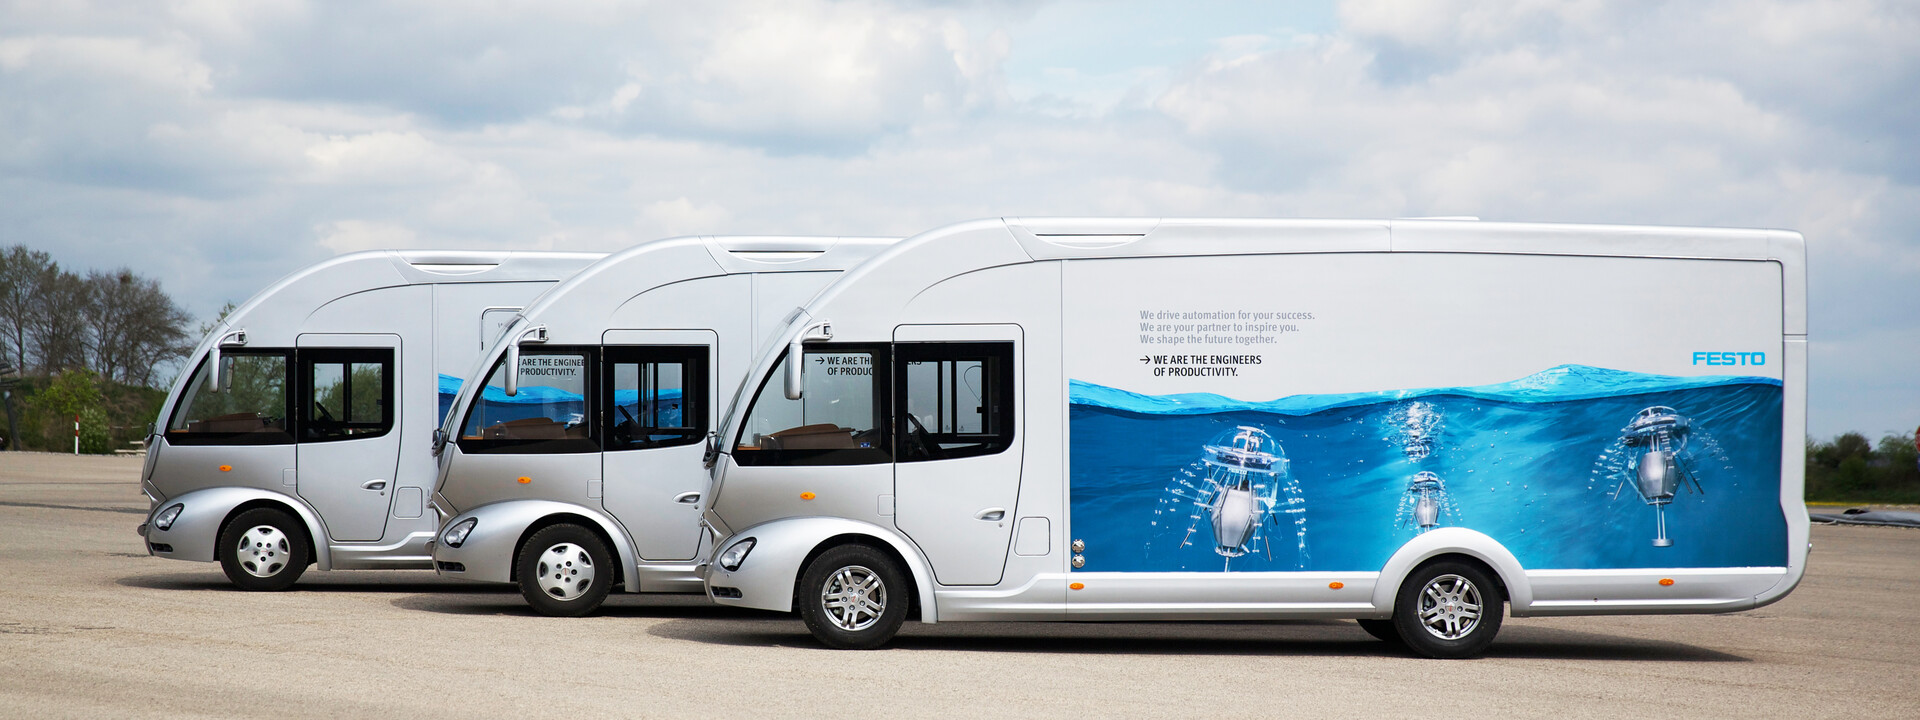 FESTO Infomobile Roadshow